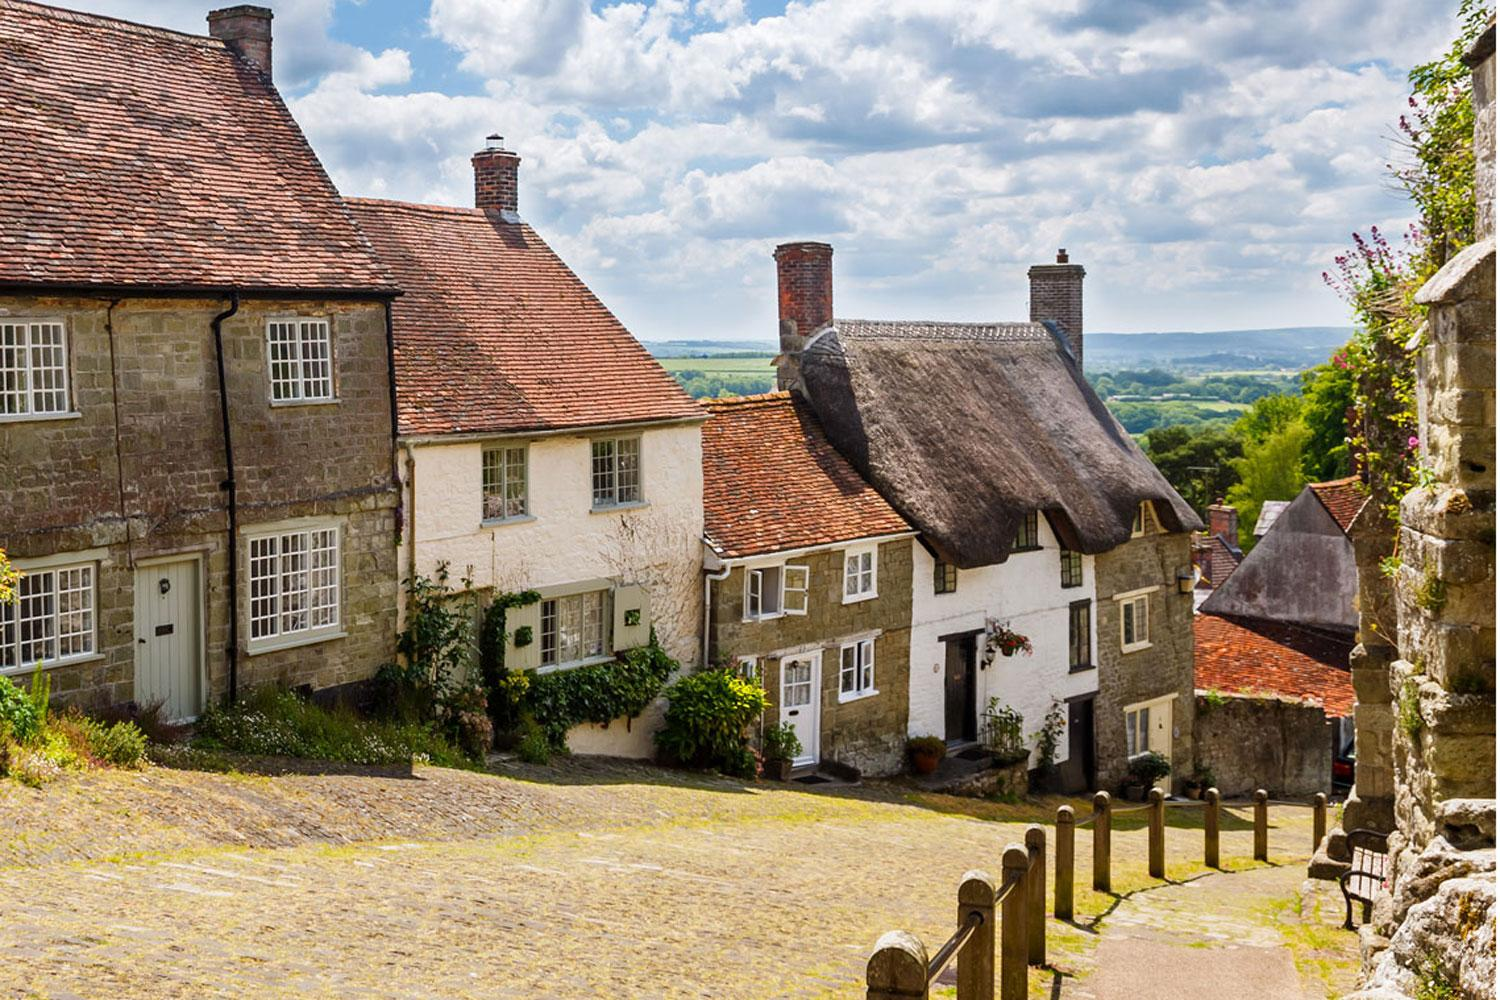 Gold Hill in the historic town of Shaftesbury